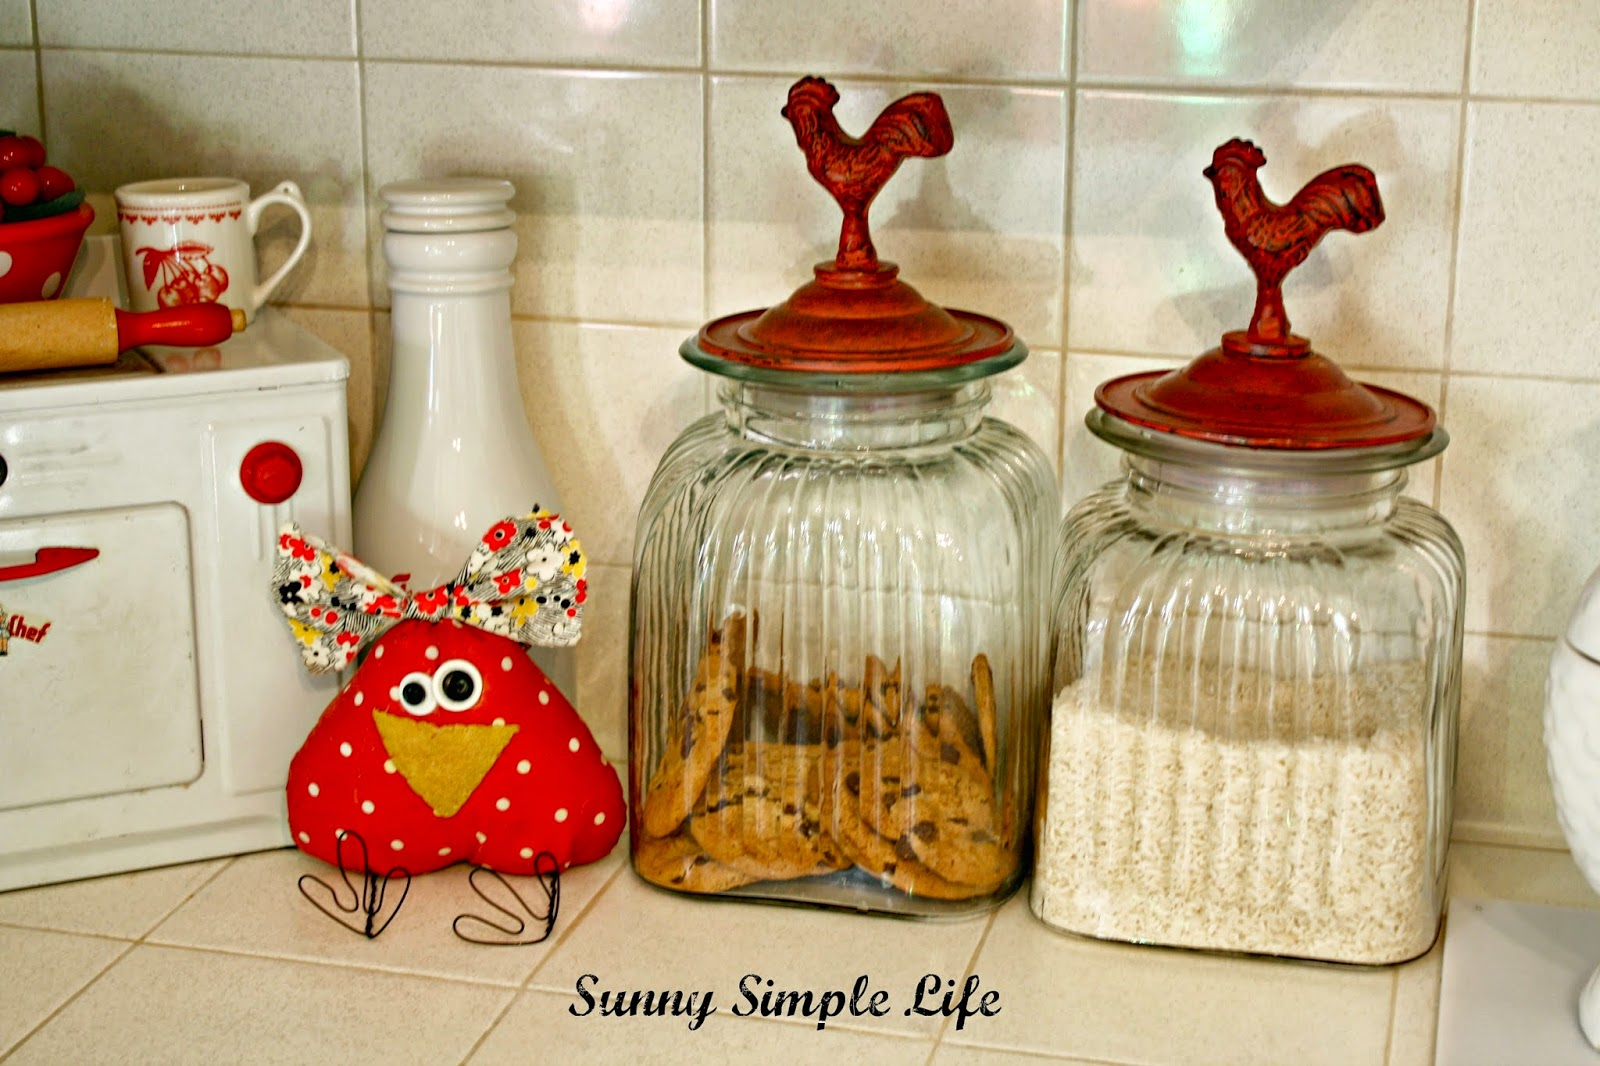 Sunny simple life chickens in kitchen decor for Kitchen decoration